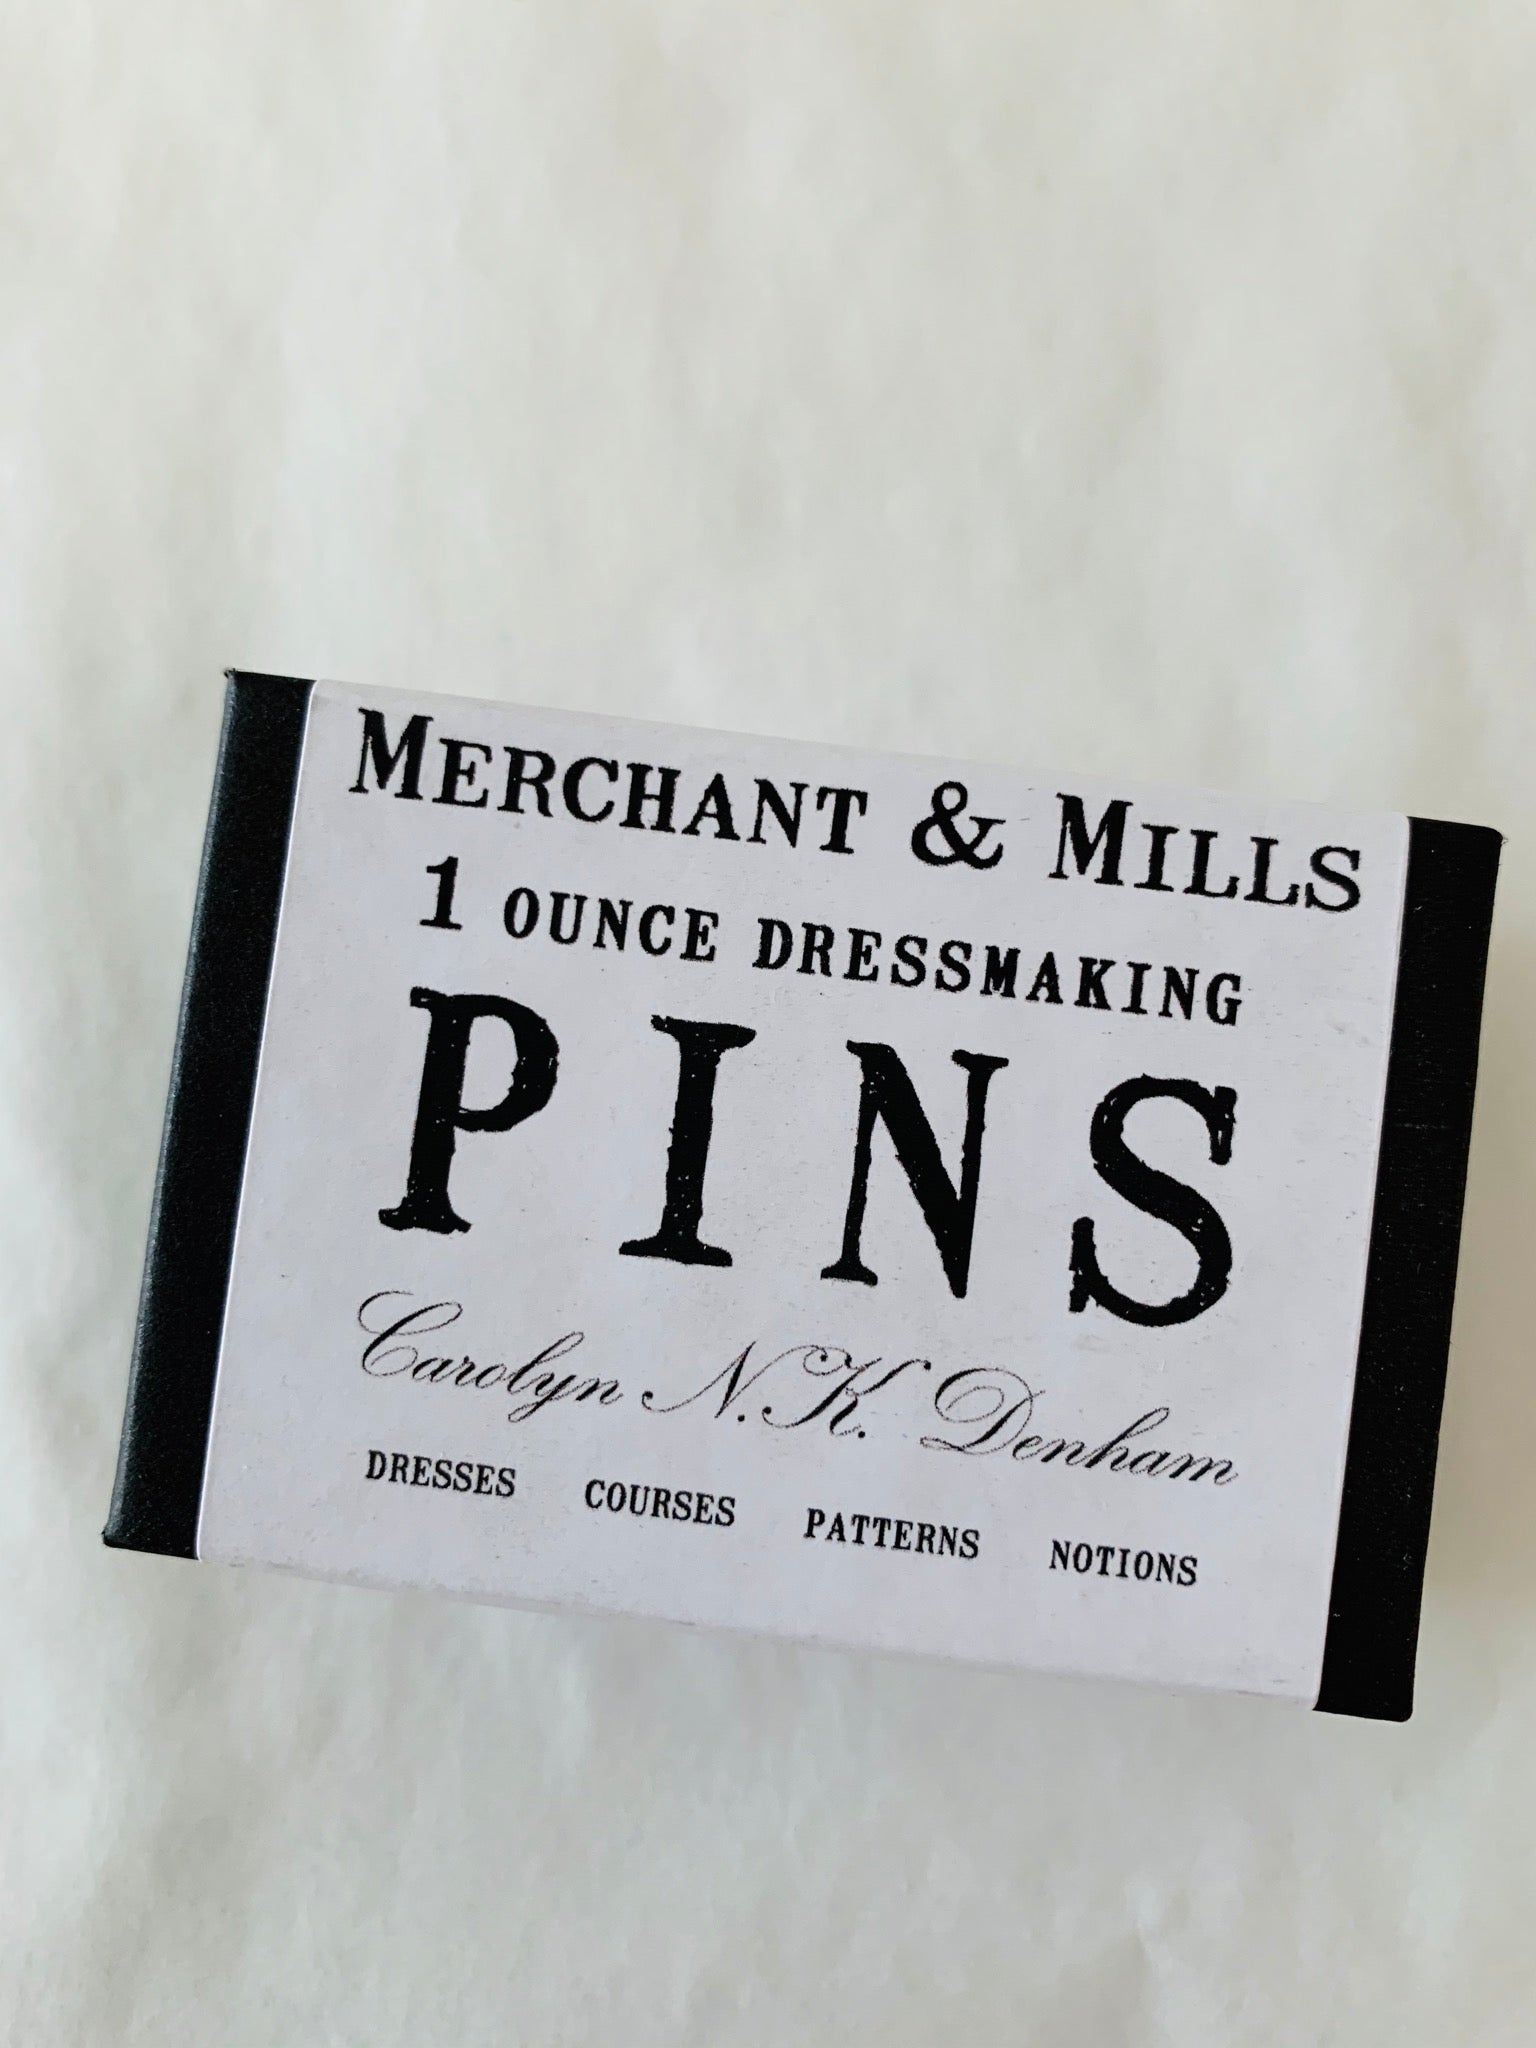 Merchant and Mills 1 ounce dressmaking pins